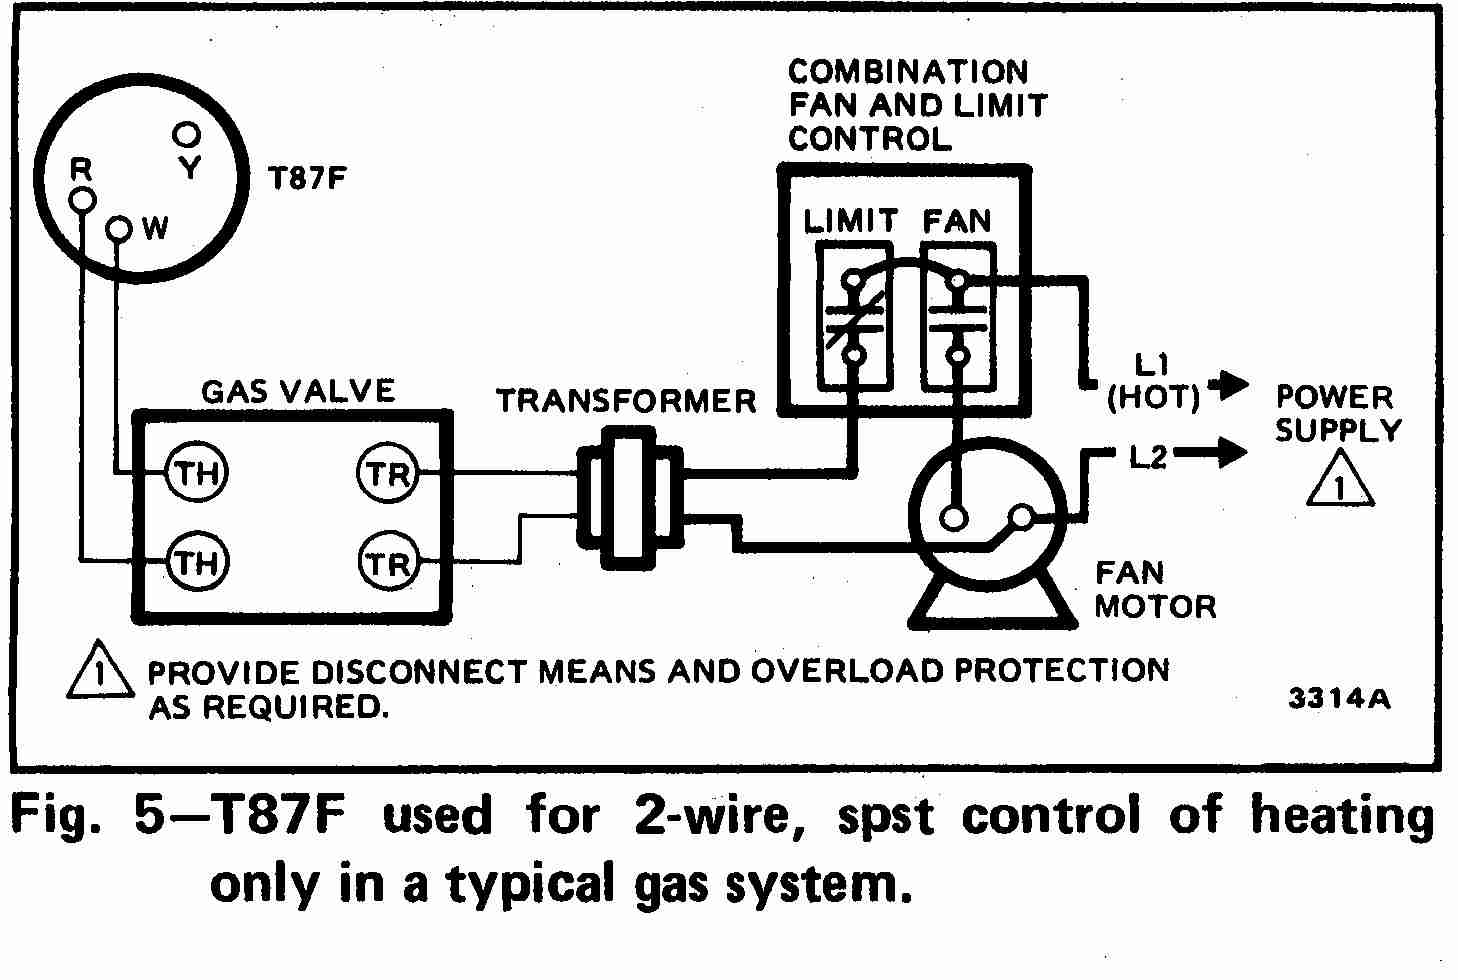 General Wiring Thermostat Manual Guide Diagram Electric Weathertron To Connections For Room Thermostats Rh Inspectapedia Com Old White Rodgers